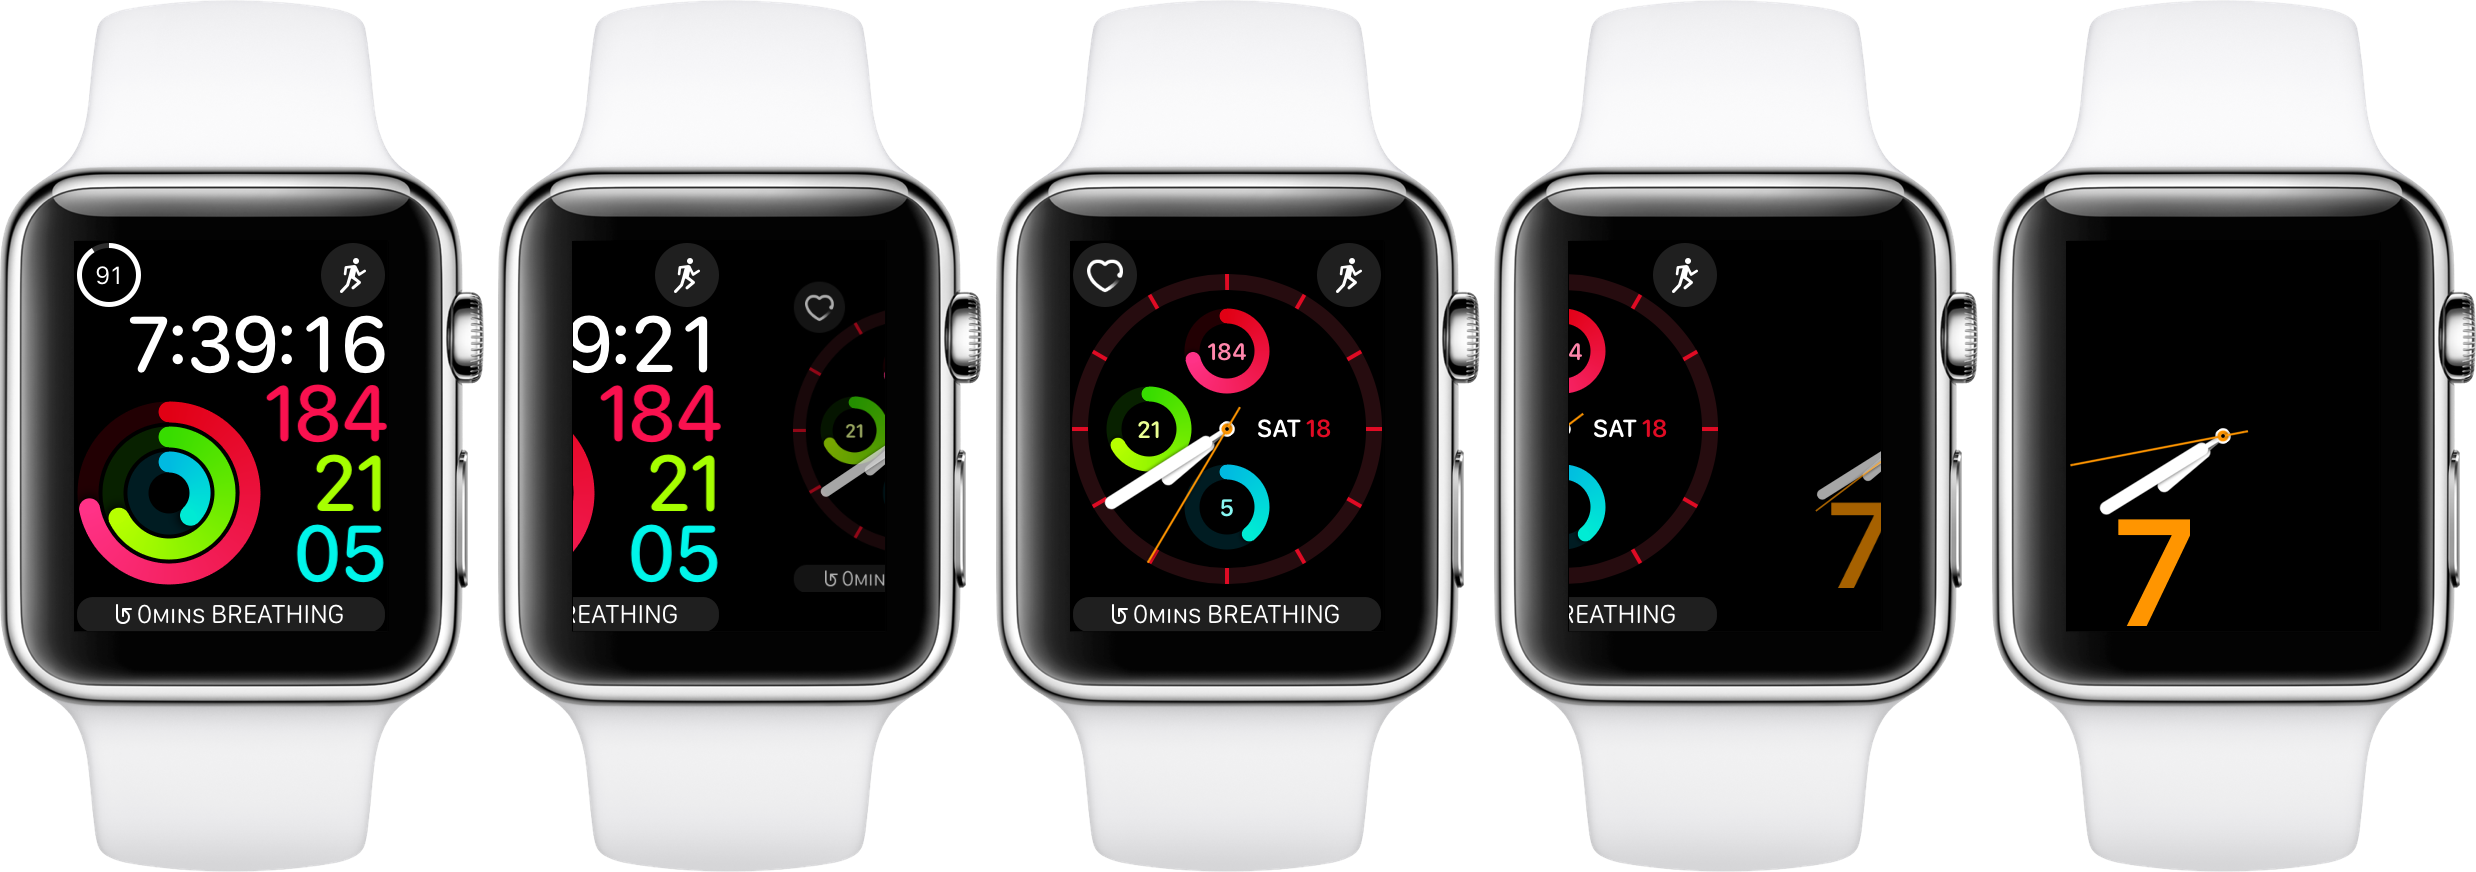 watchOS 3 preview faster performance, instant app